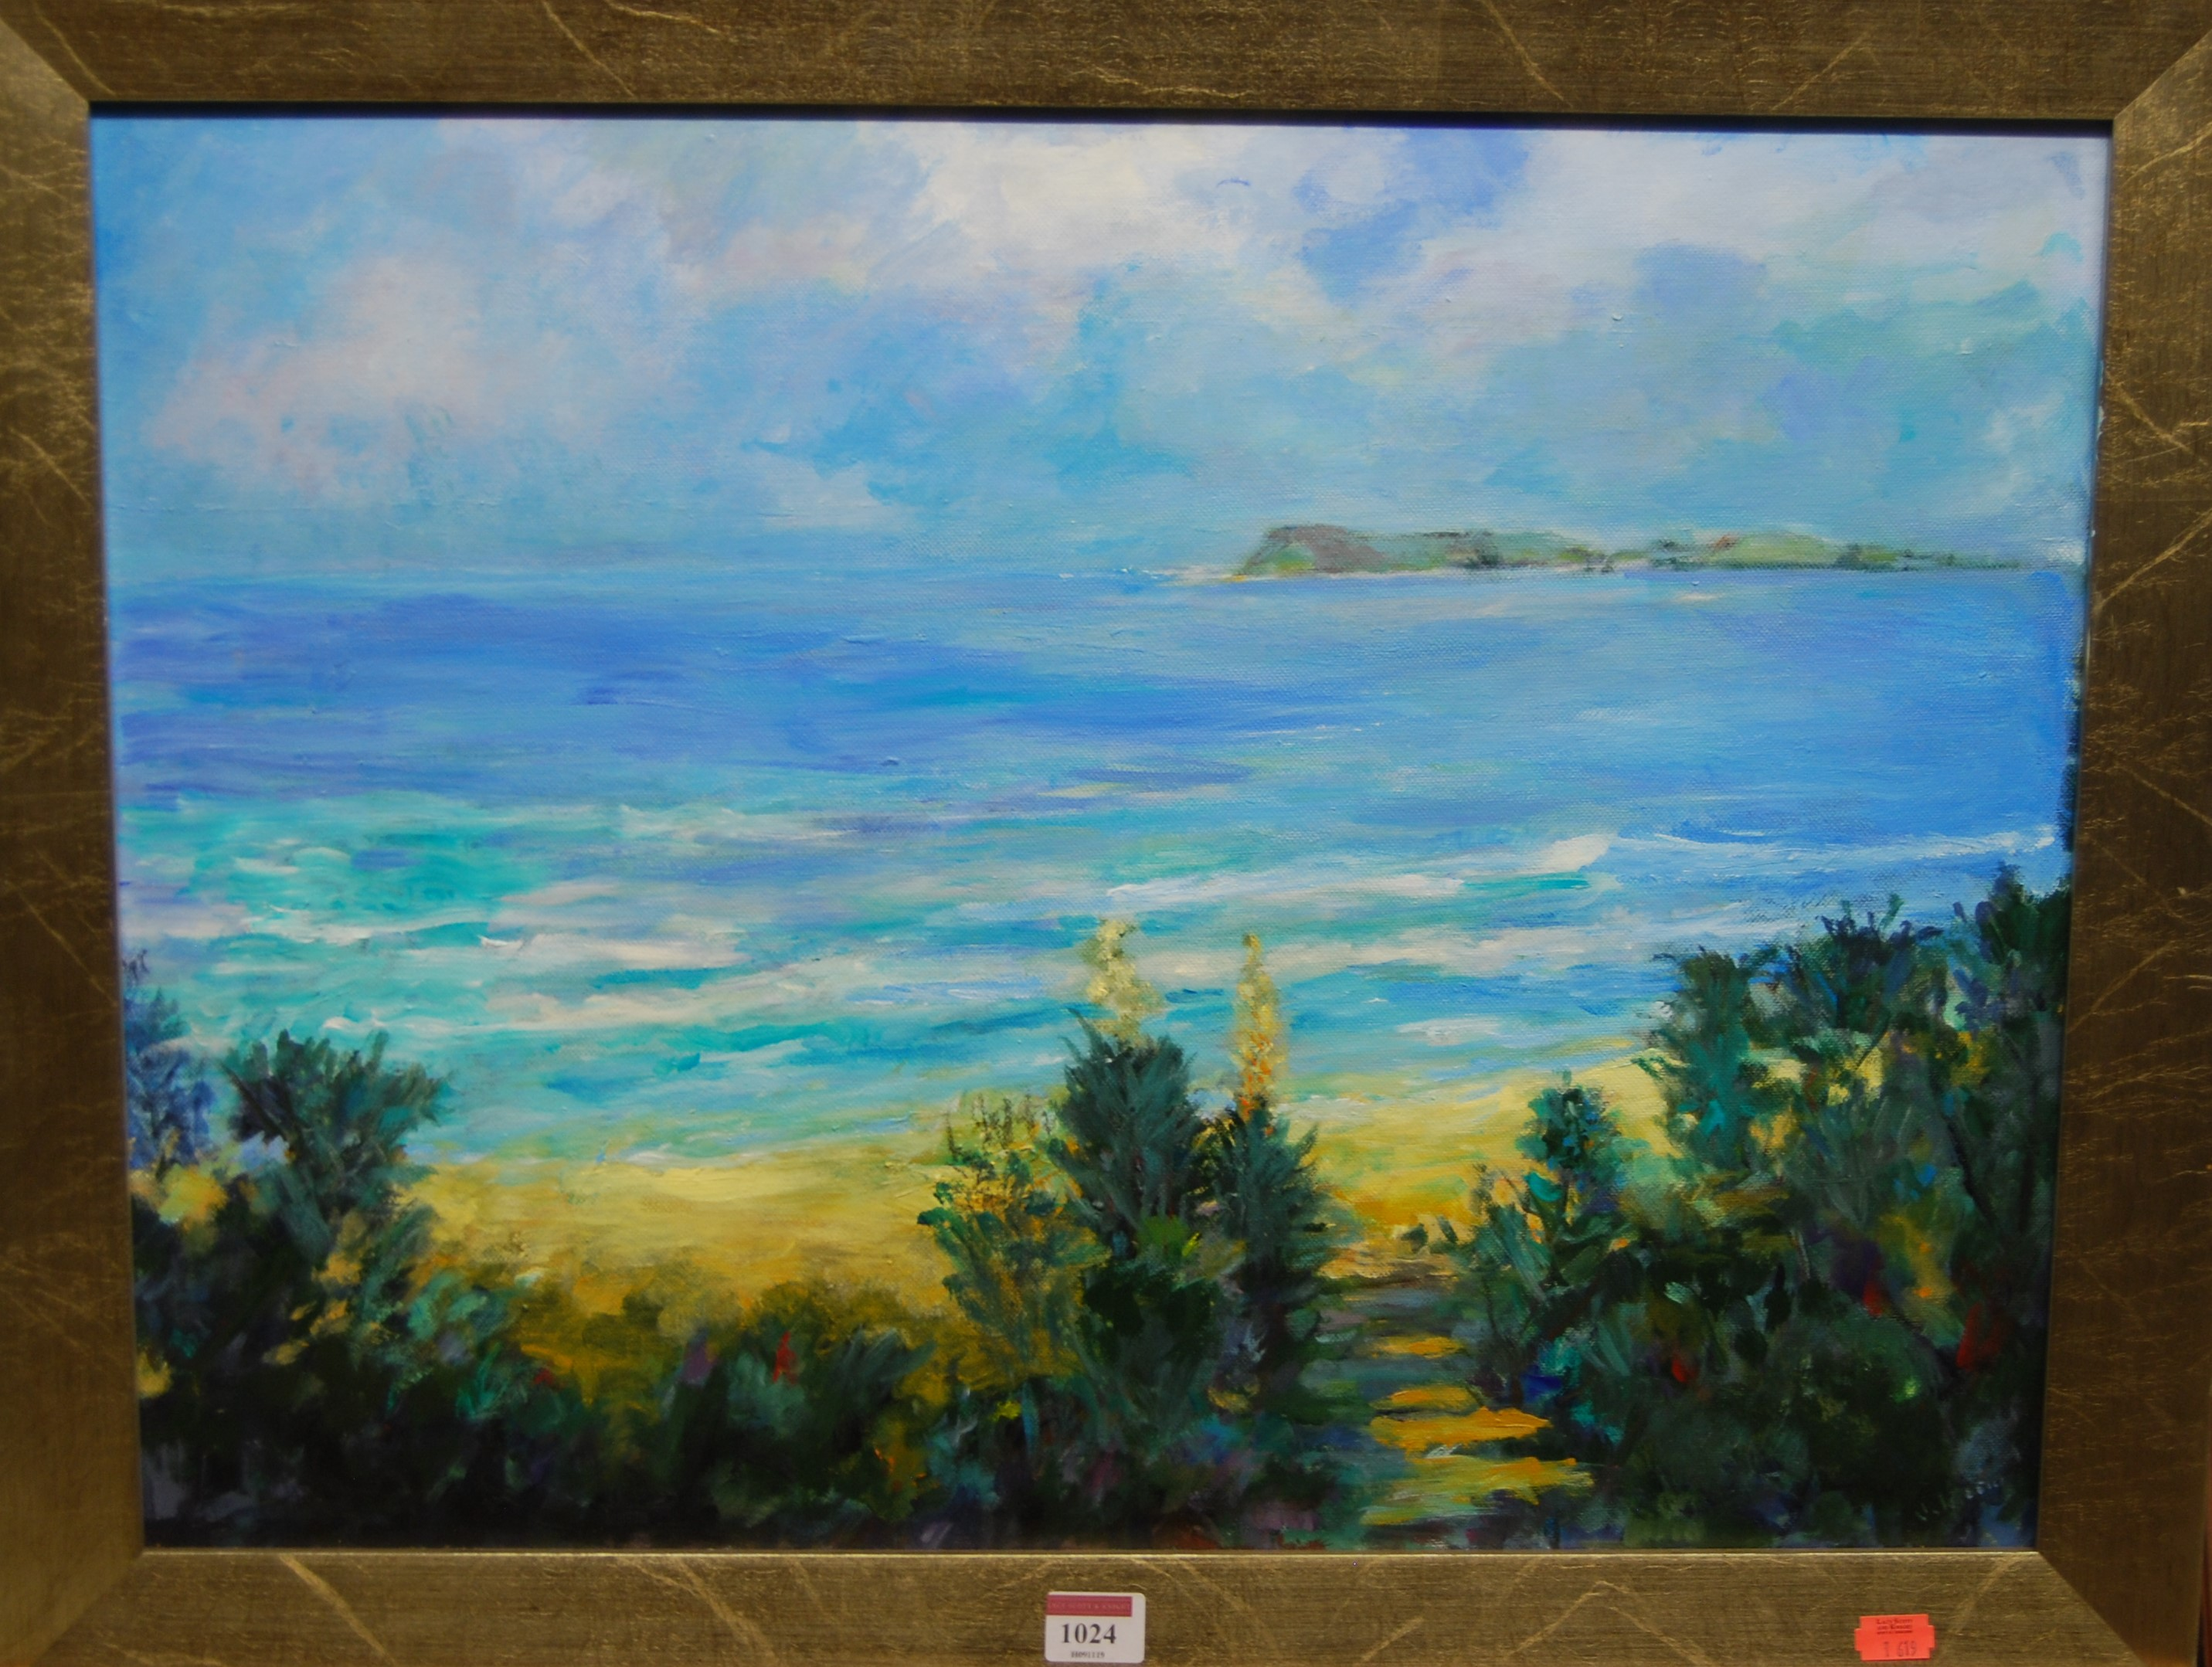 Lot 1024 - Contemporary school - Coastal scene, oil on canvas, indistinctly signed lower right, 45 x 60cm